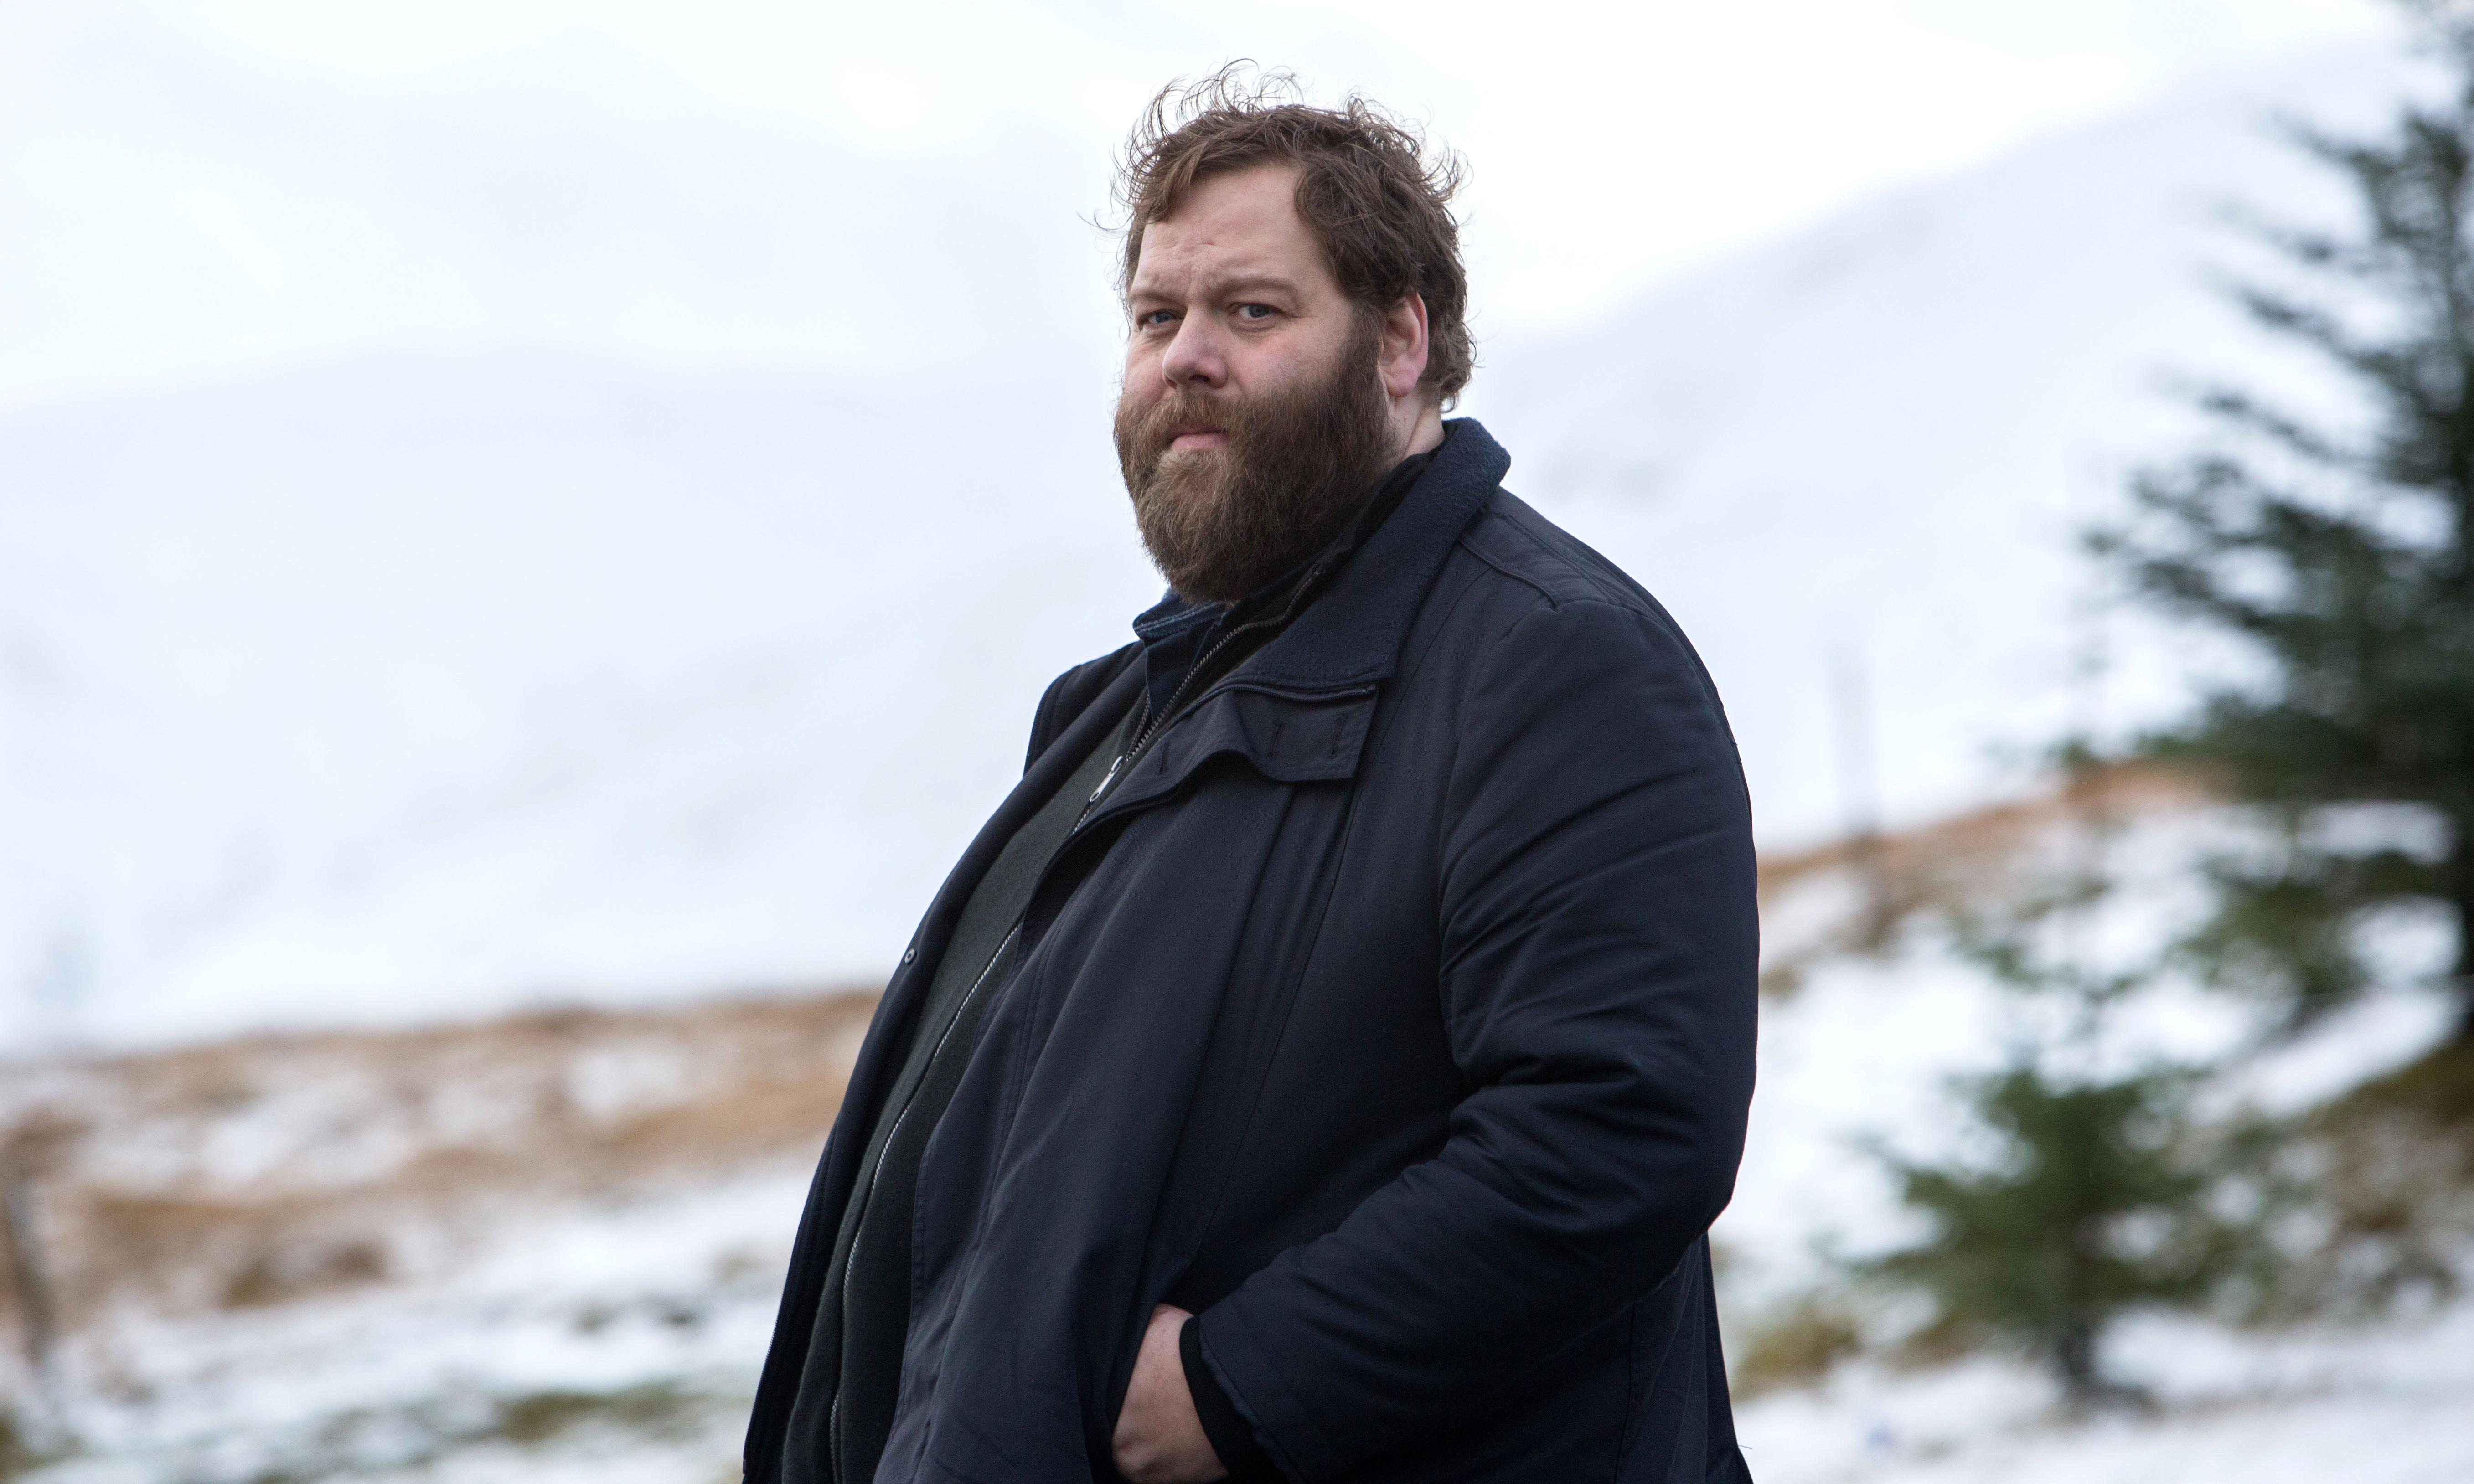 Make Iceland Great Again! The return of Trapped, 2019's most timely show